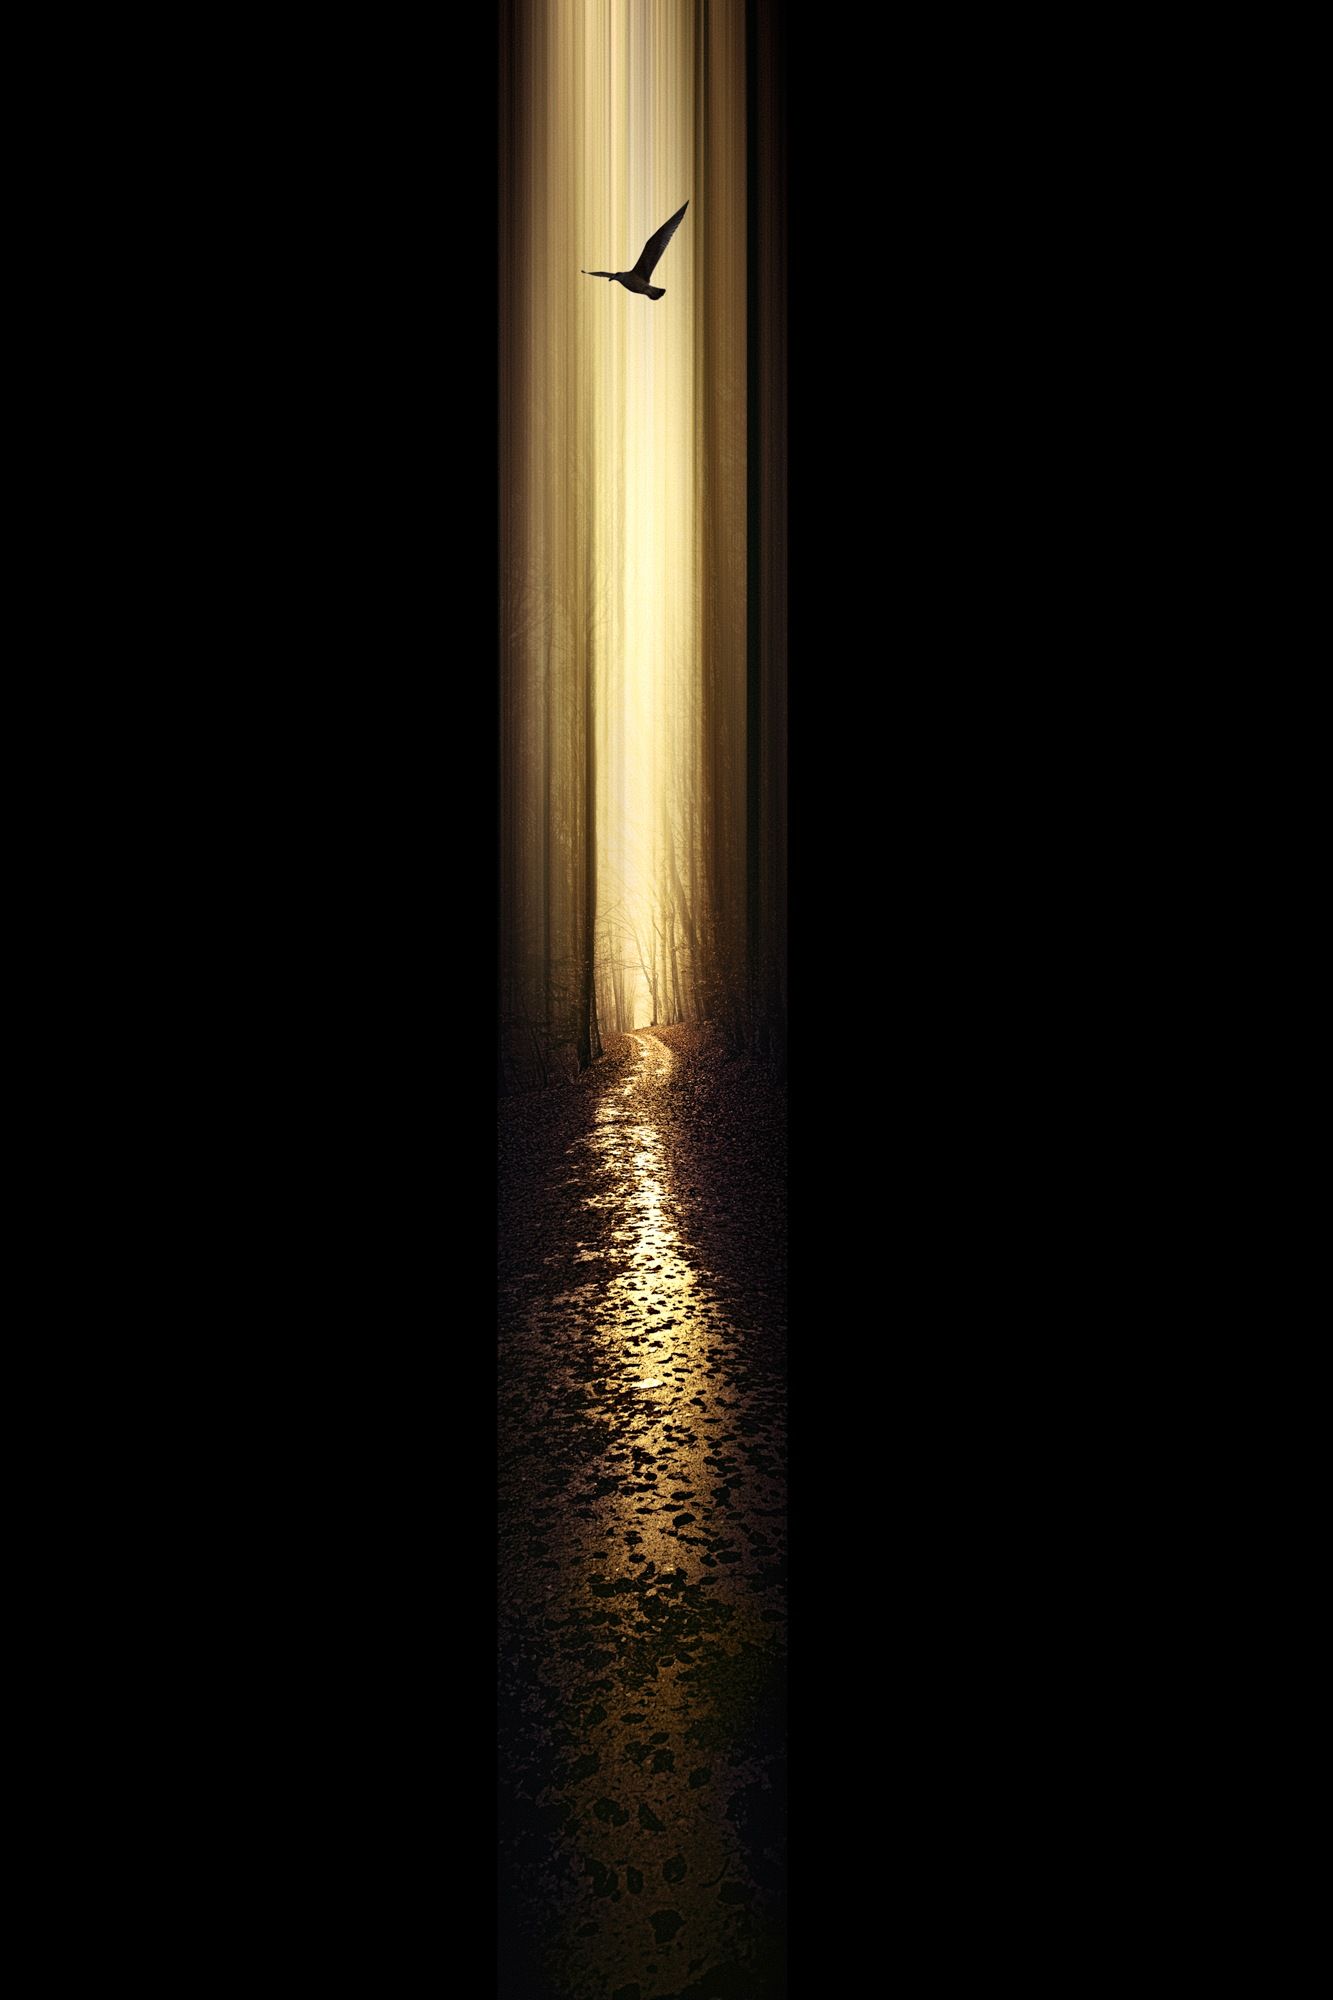 andthe Light shines in the darkness by John Noe